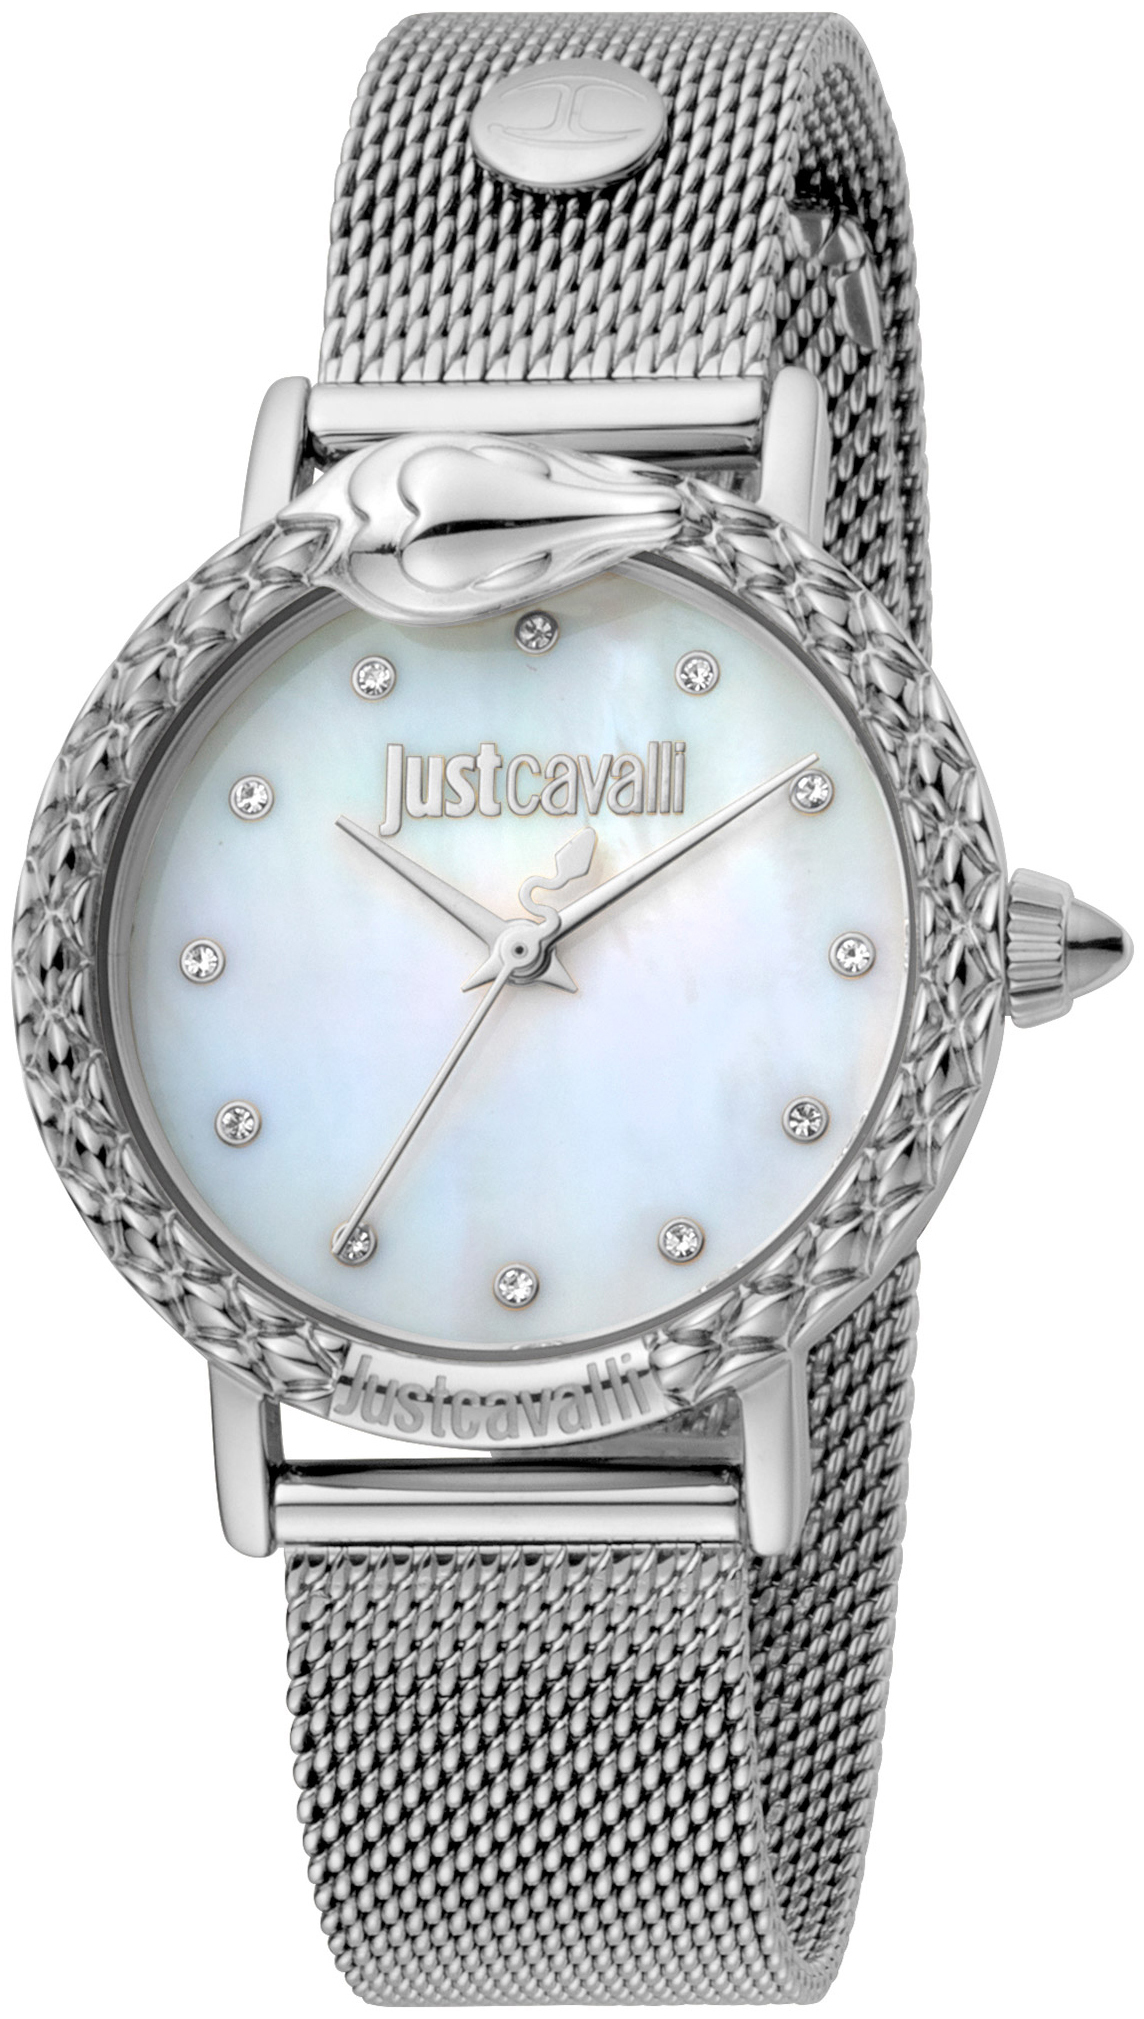 Just Cavalli 99999 Dameur JC1L124M0055 Hvid/Stål Ø34 mm